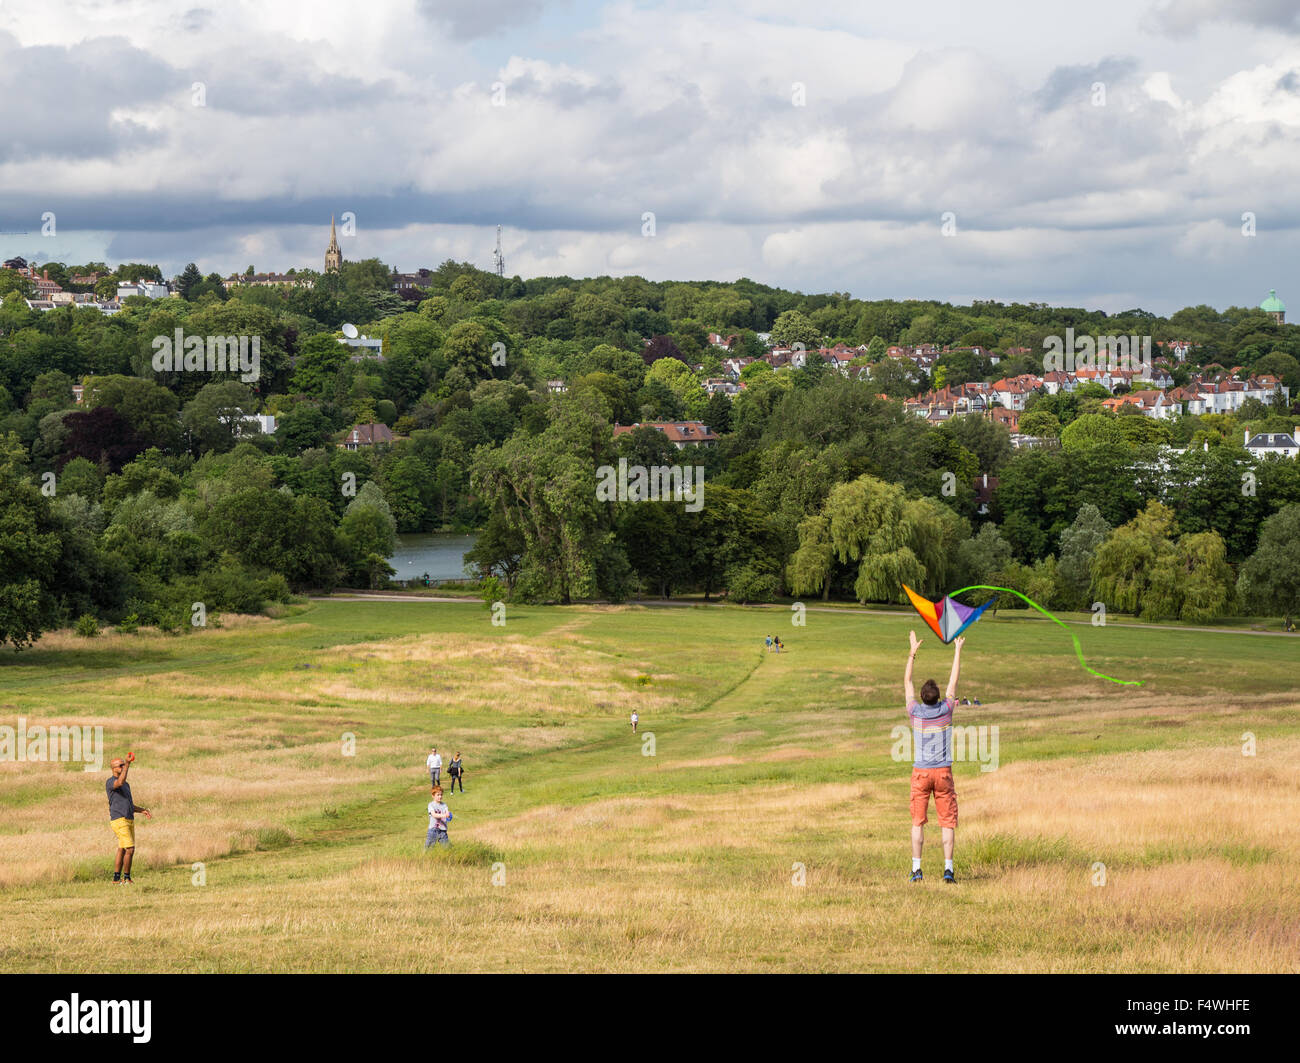 people flying kite on Hampstead Heath, Parliament Hill, London on a summer day - Stock Image